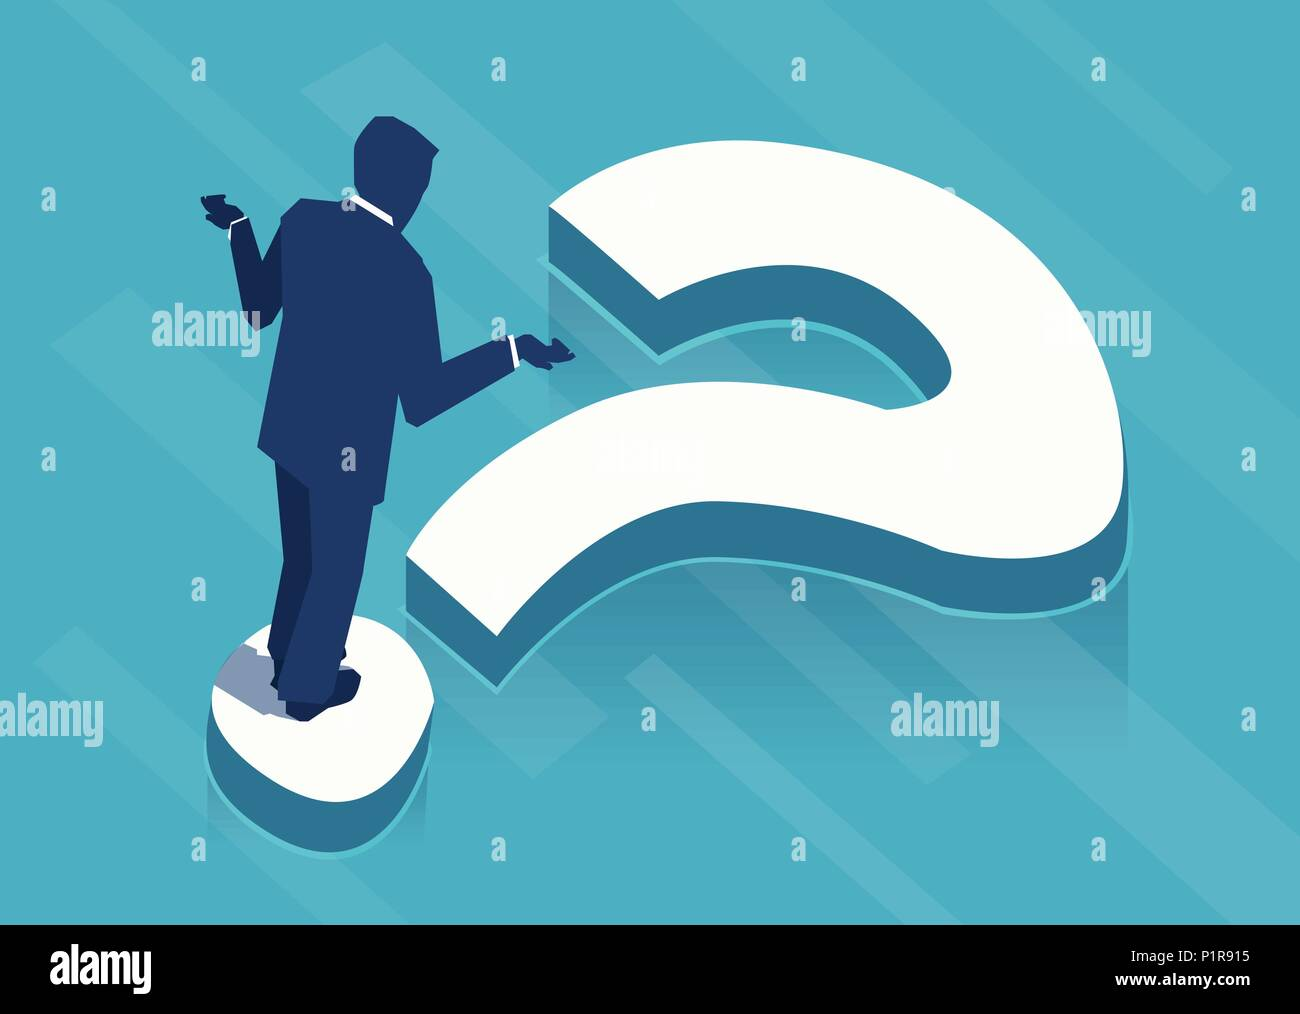 Vector illustration of businessman standing on question mark in perplexion. - Stock Image